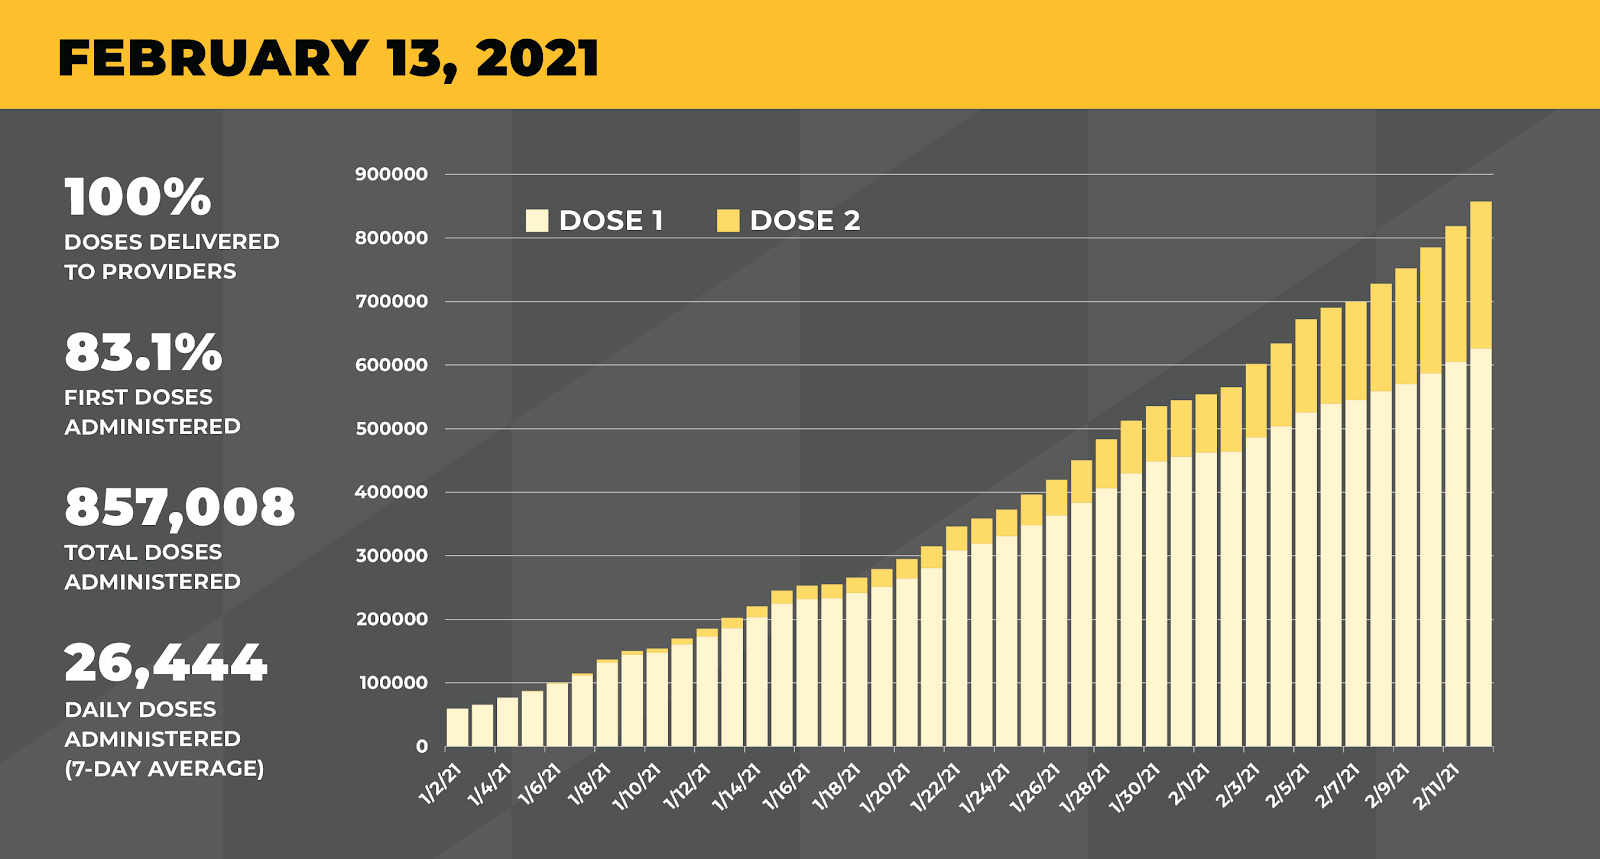 Infographic showing vaccine administration increasing to 857,008 total doses and 26,444 average daily doses.